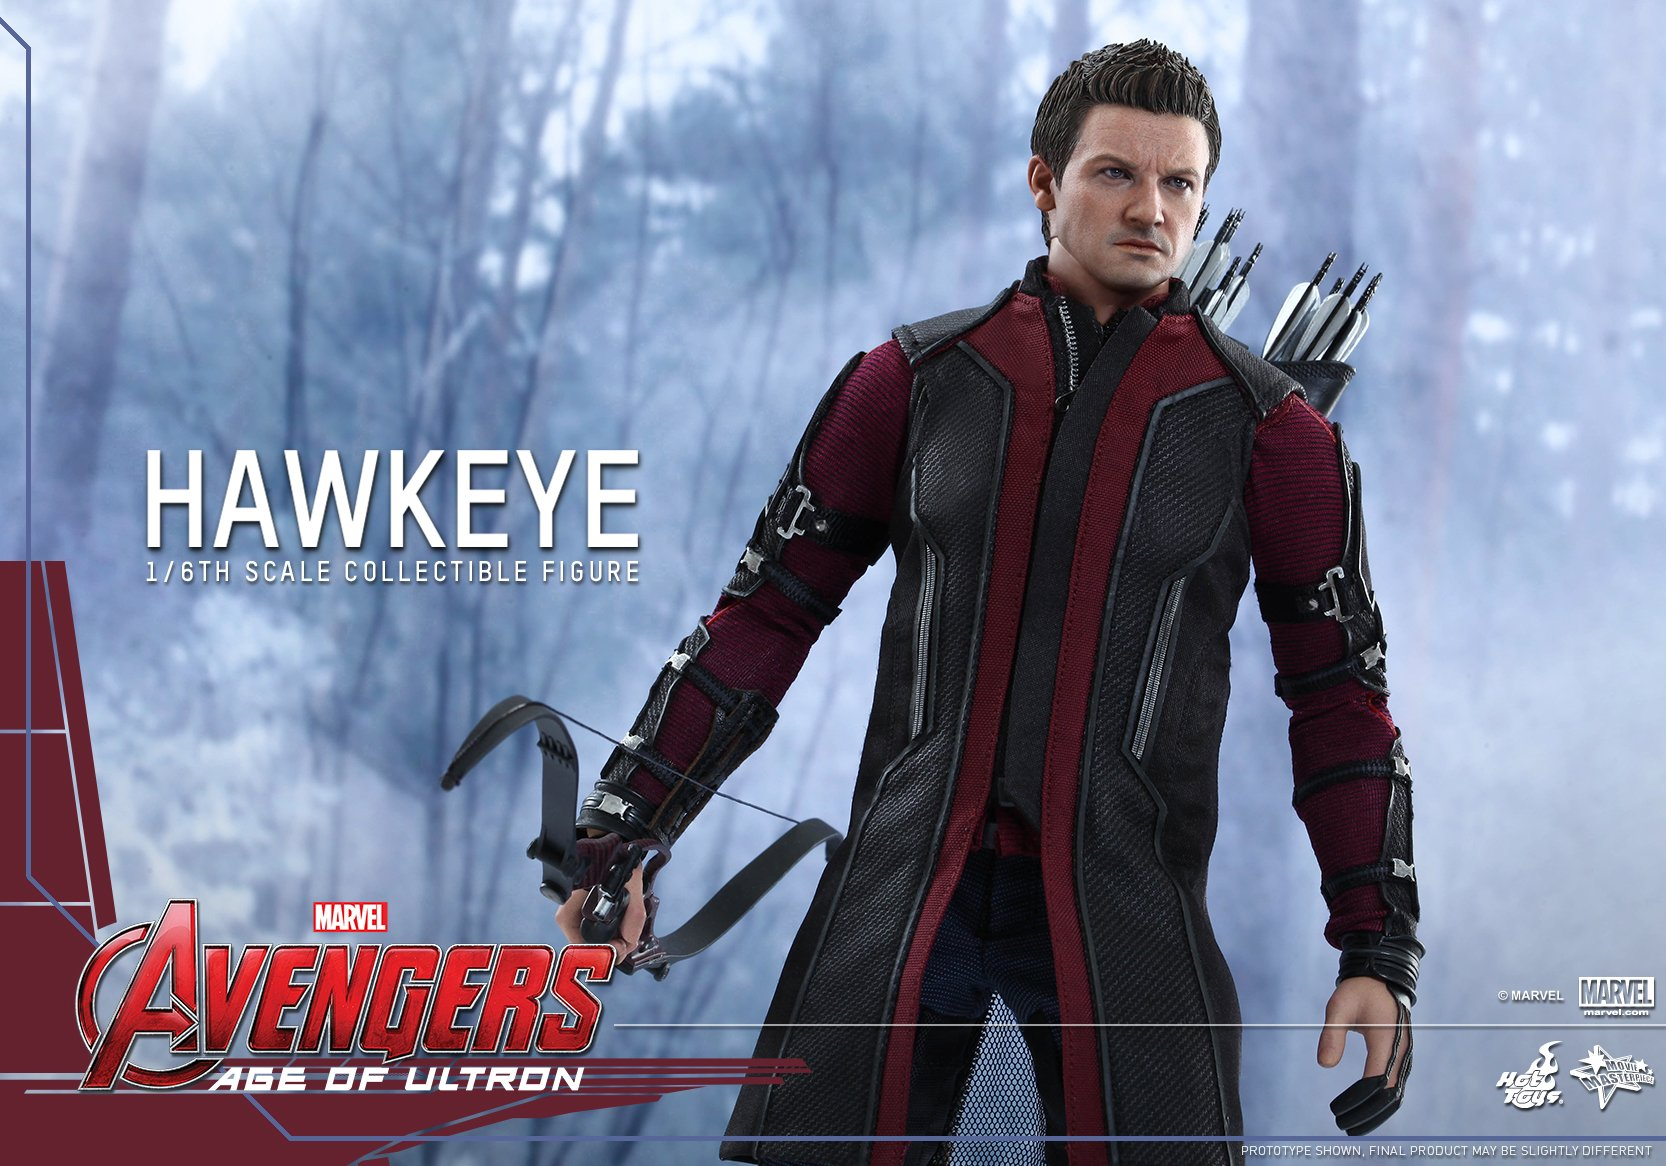 Avengers Age Of Ultron Wallpaper And Background Image 1666x1166